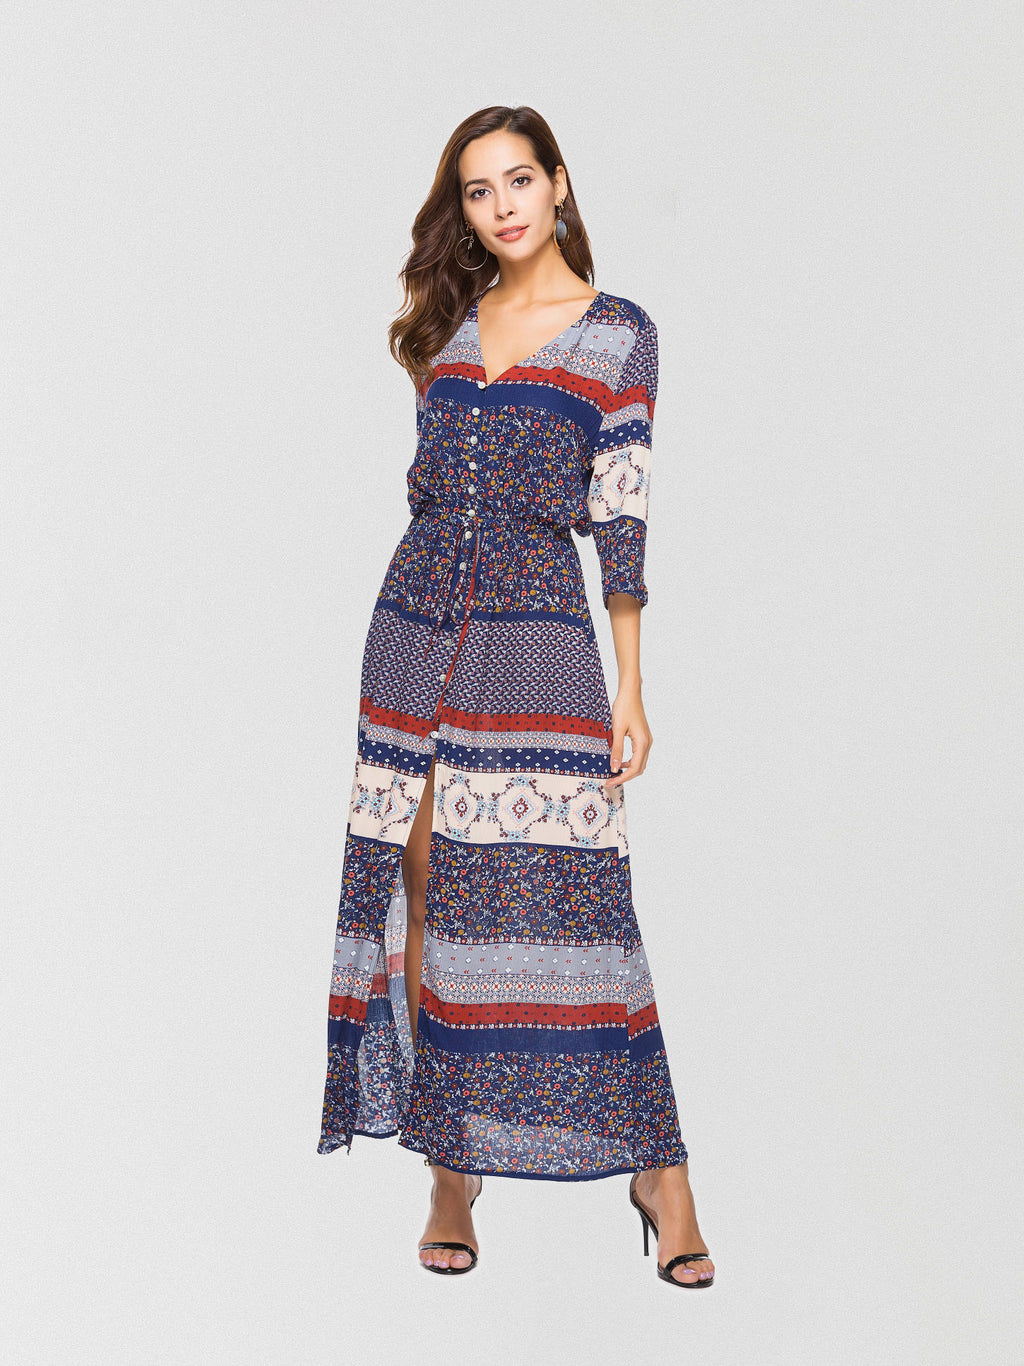 Bohemian-inspired maxi dress featured in a front button-down design with high slit trimming